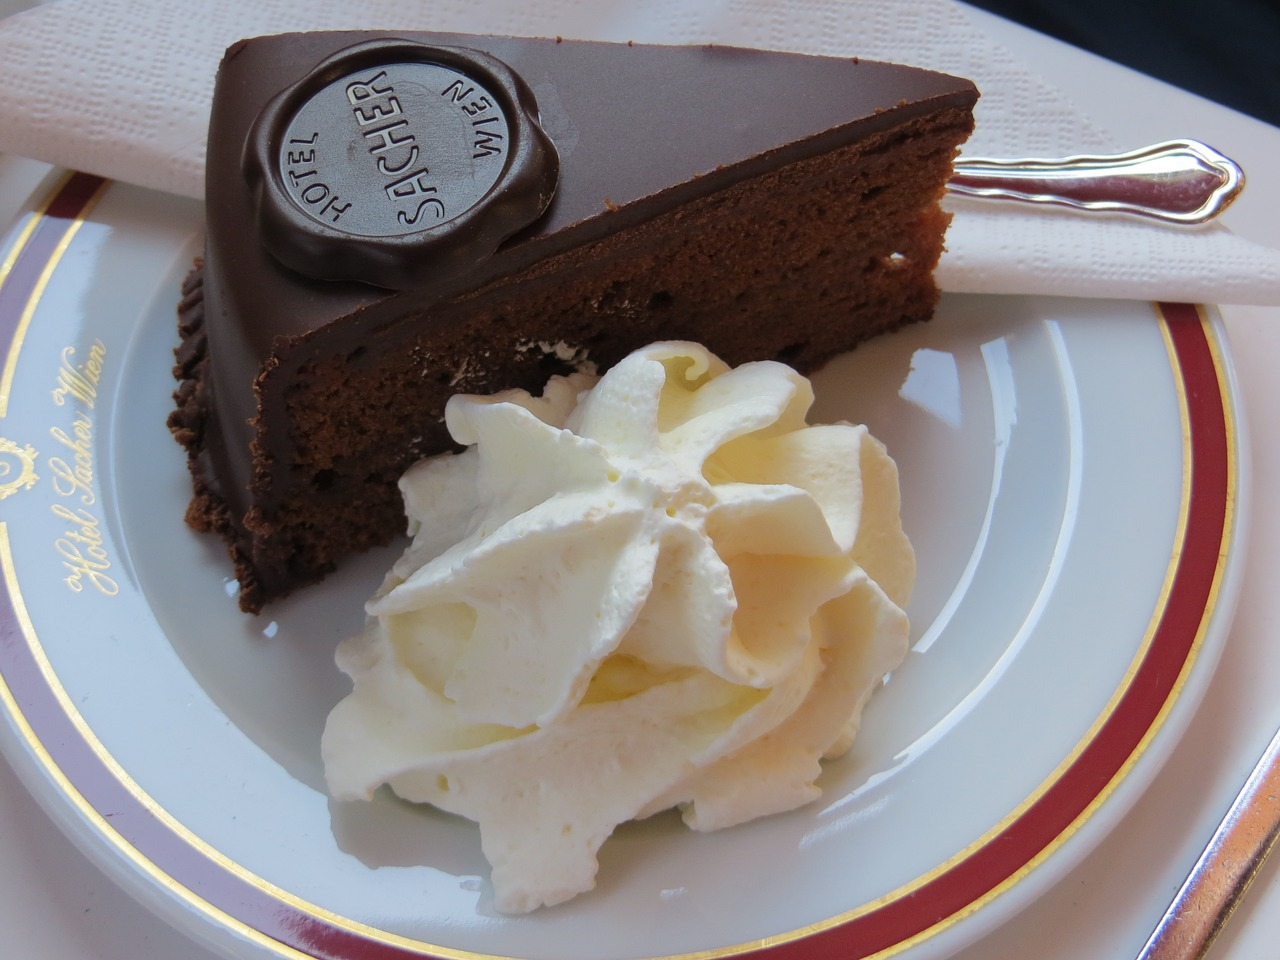 Hotel Sacher, Vienna – and a slice of cake